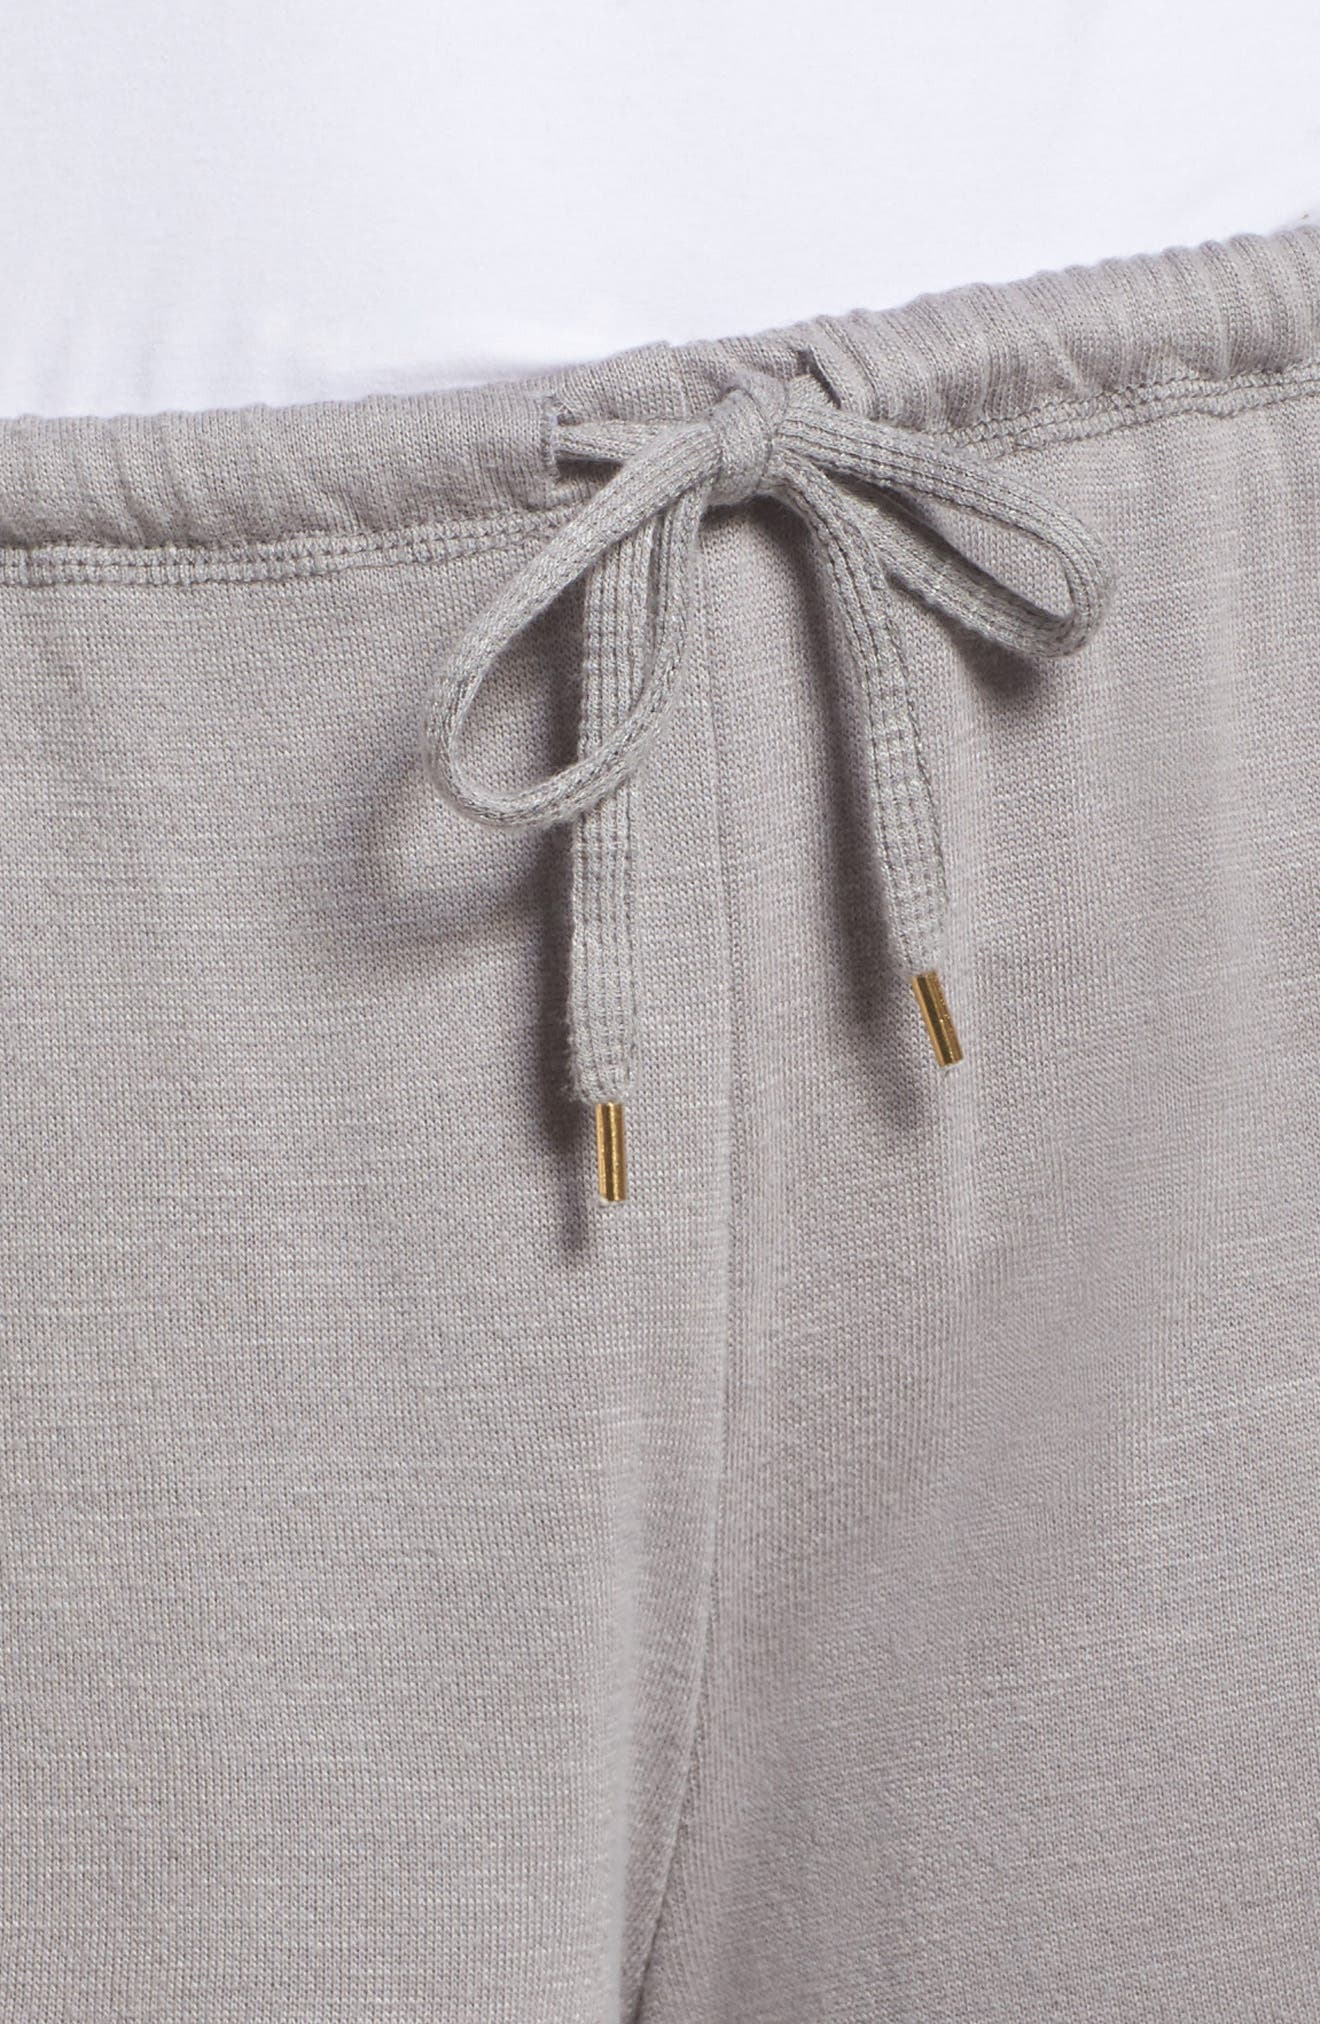 French Terry Lounge Shorts,                             Alternate thumbnail 5, color,                             Katana